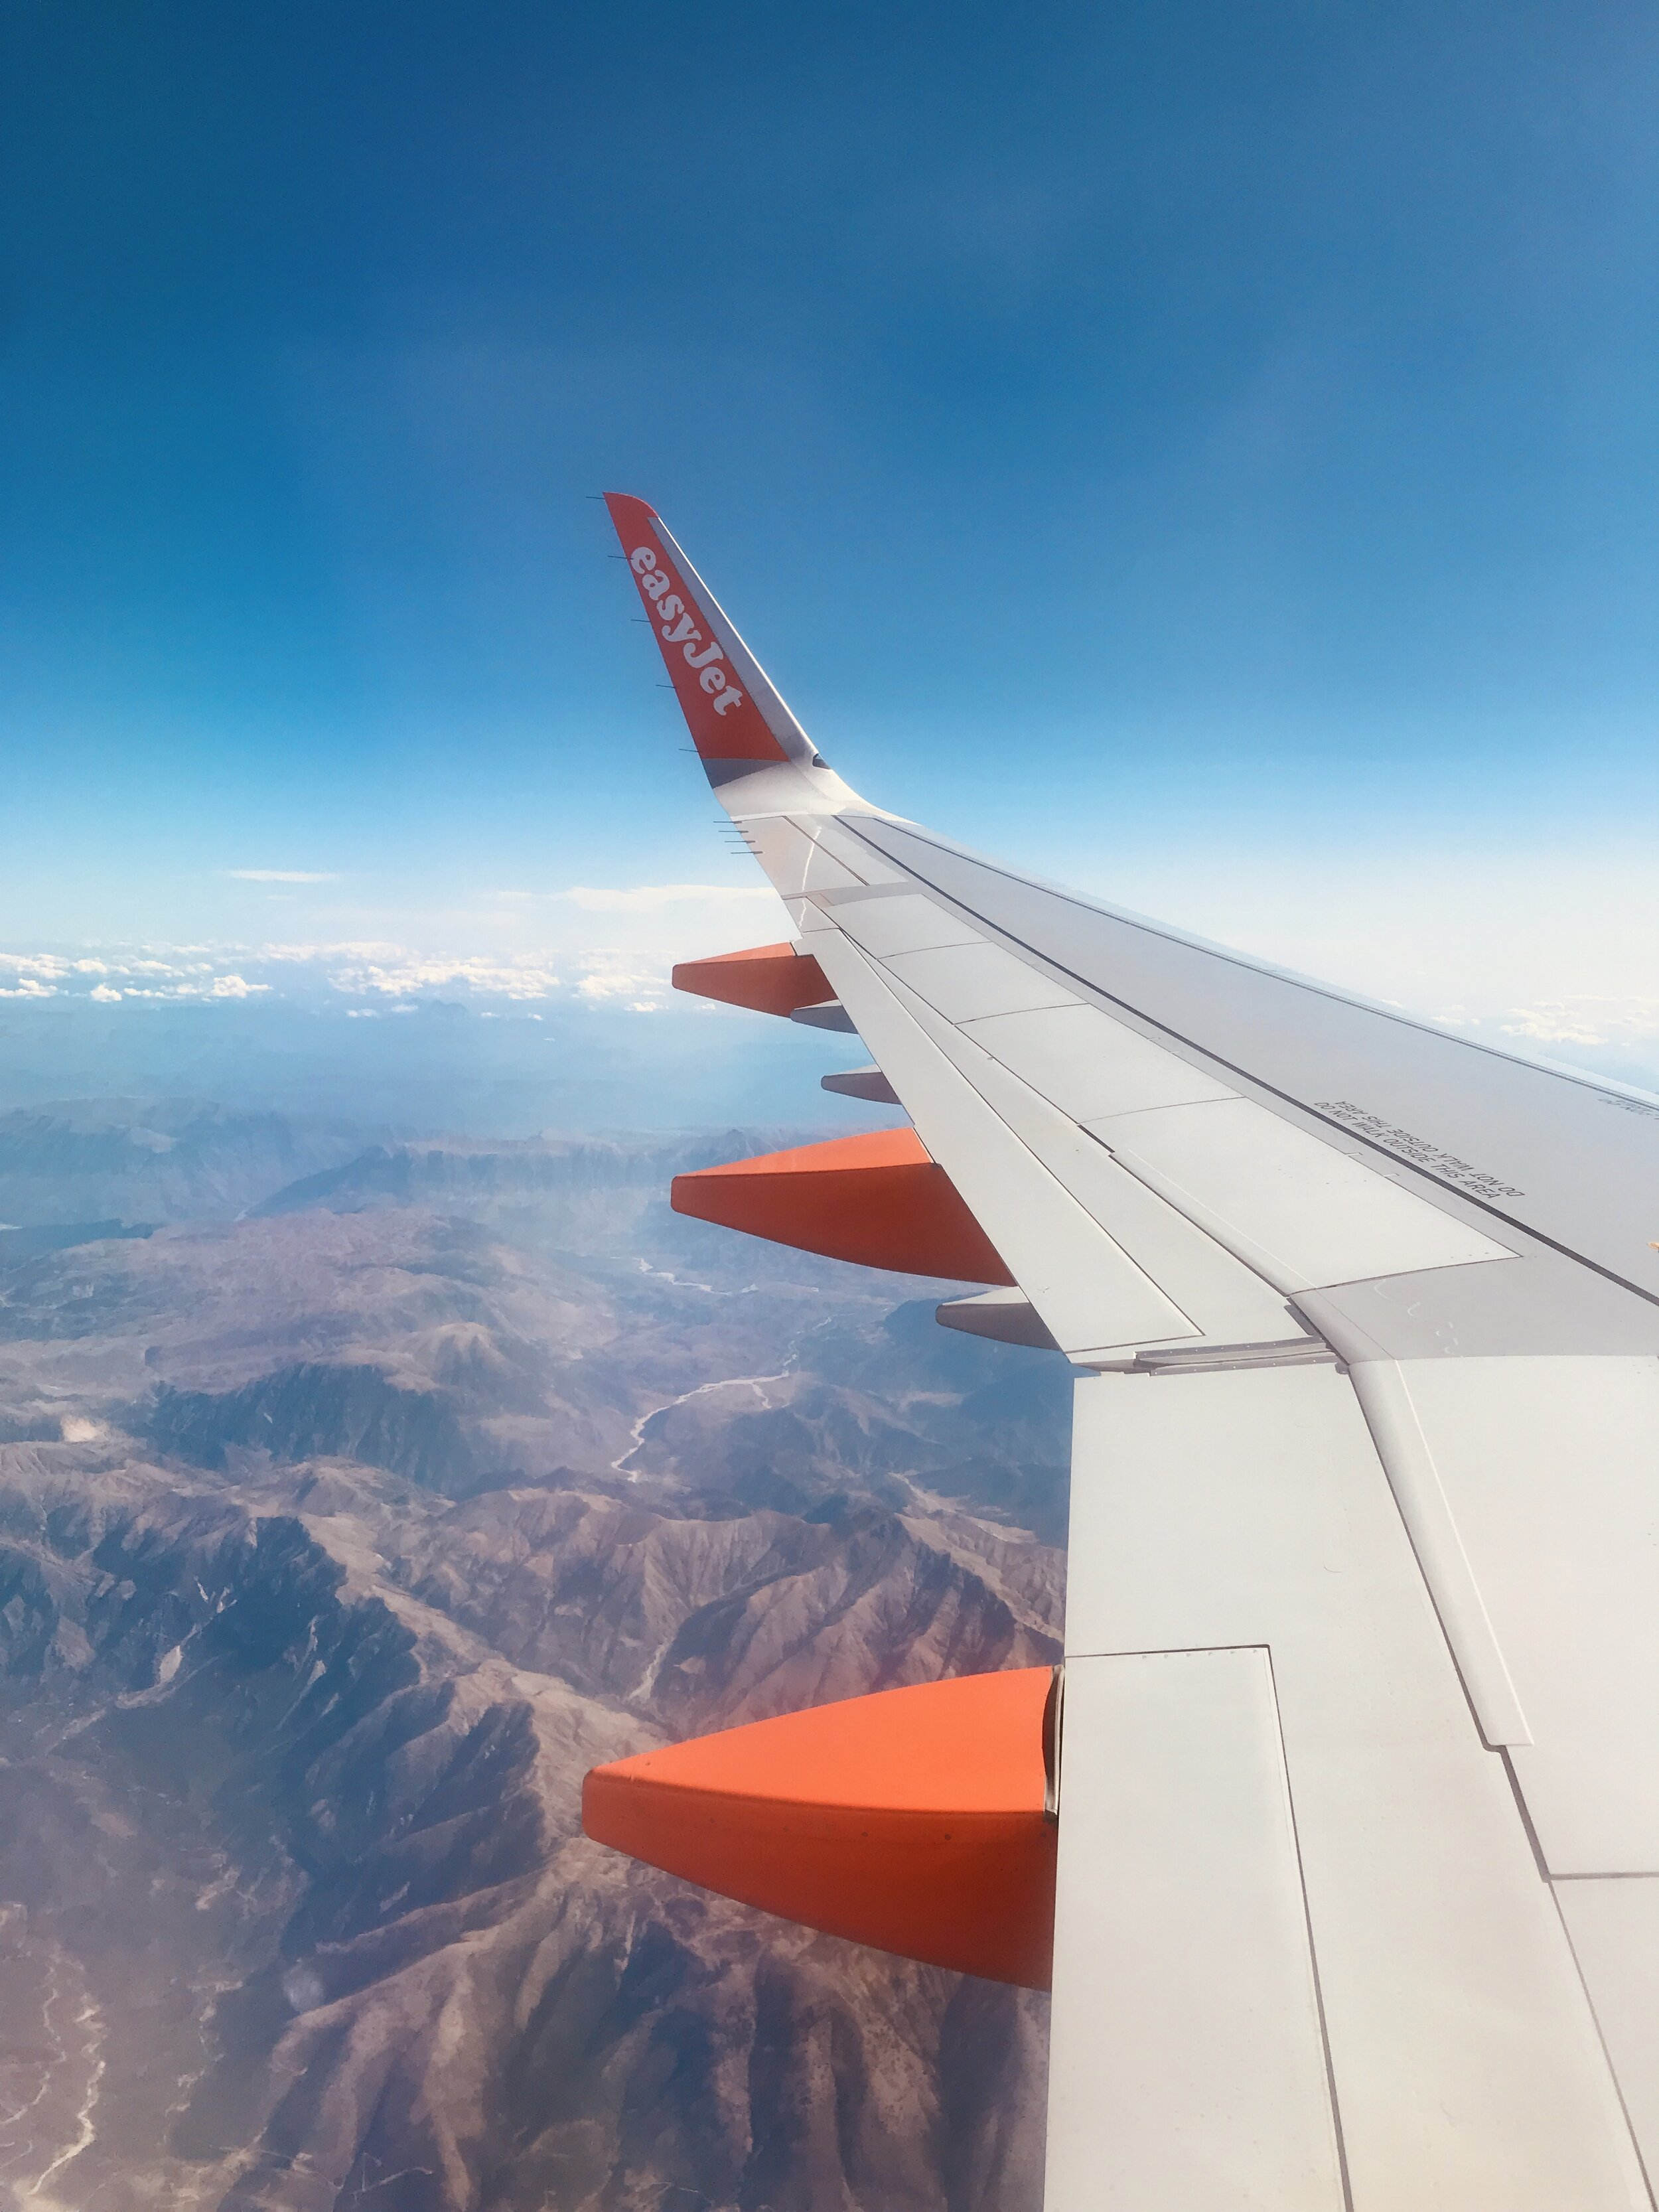 Flying in over mainland Greece and the Peloponnese mountains as we approach Preveza.